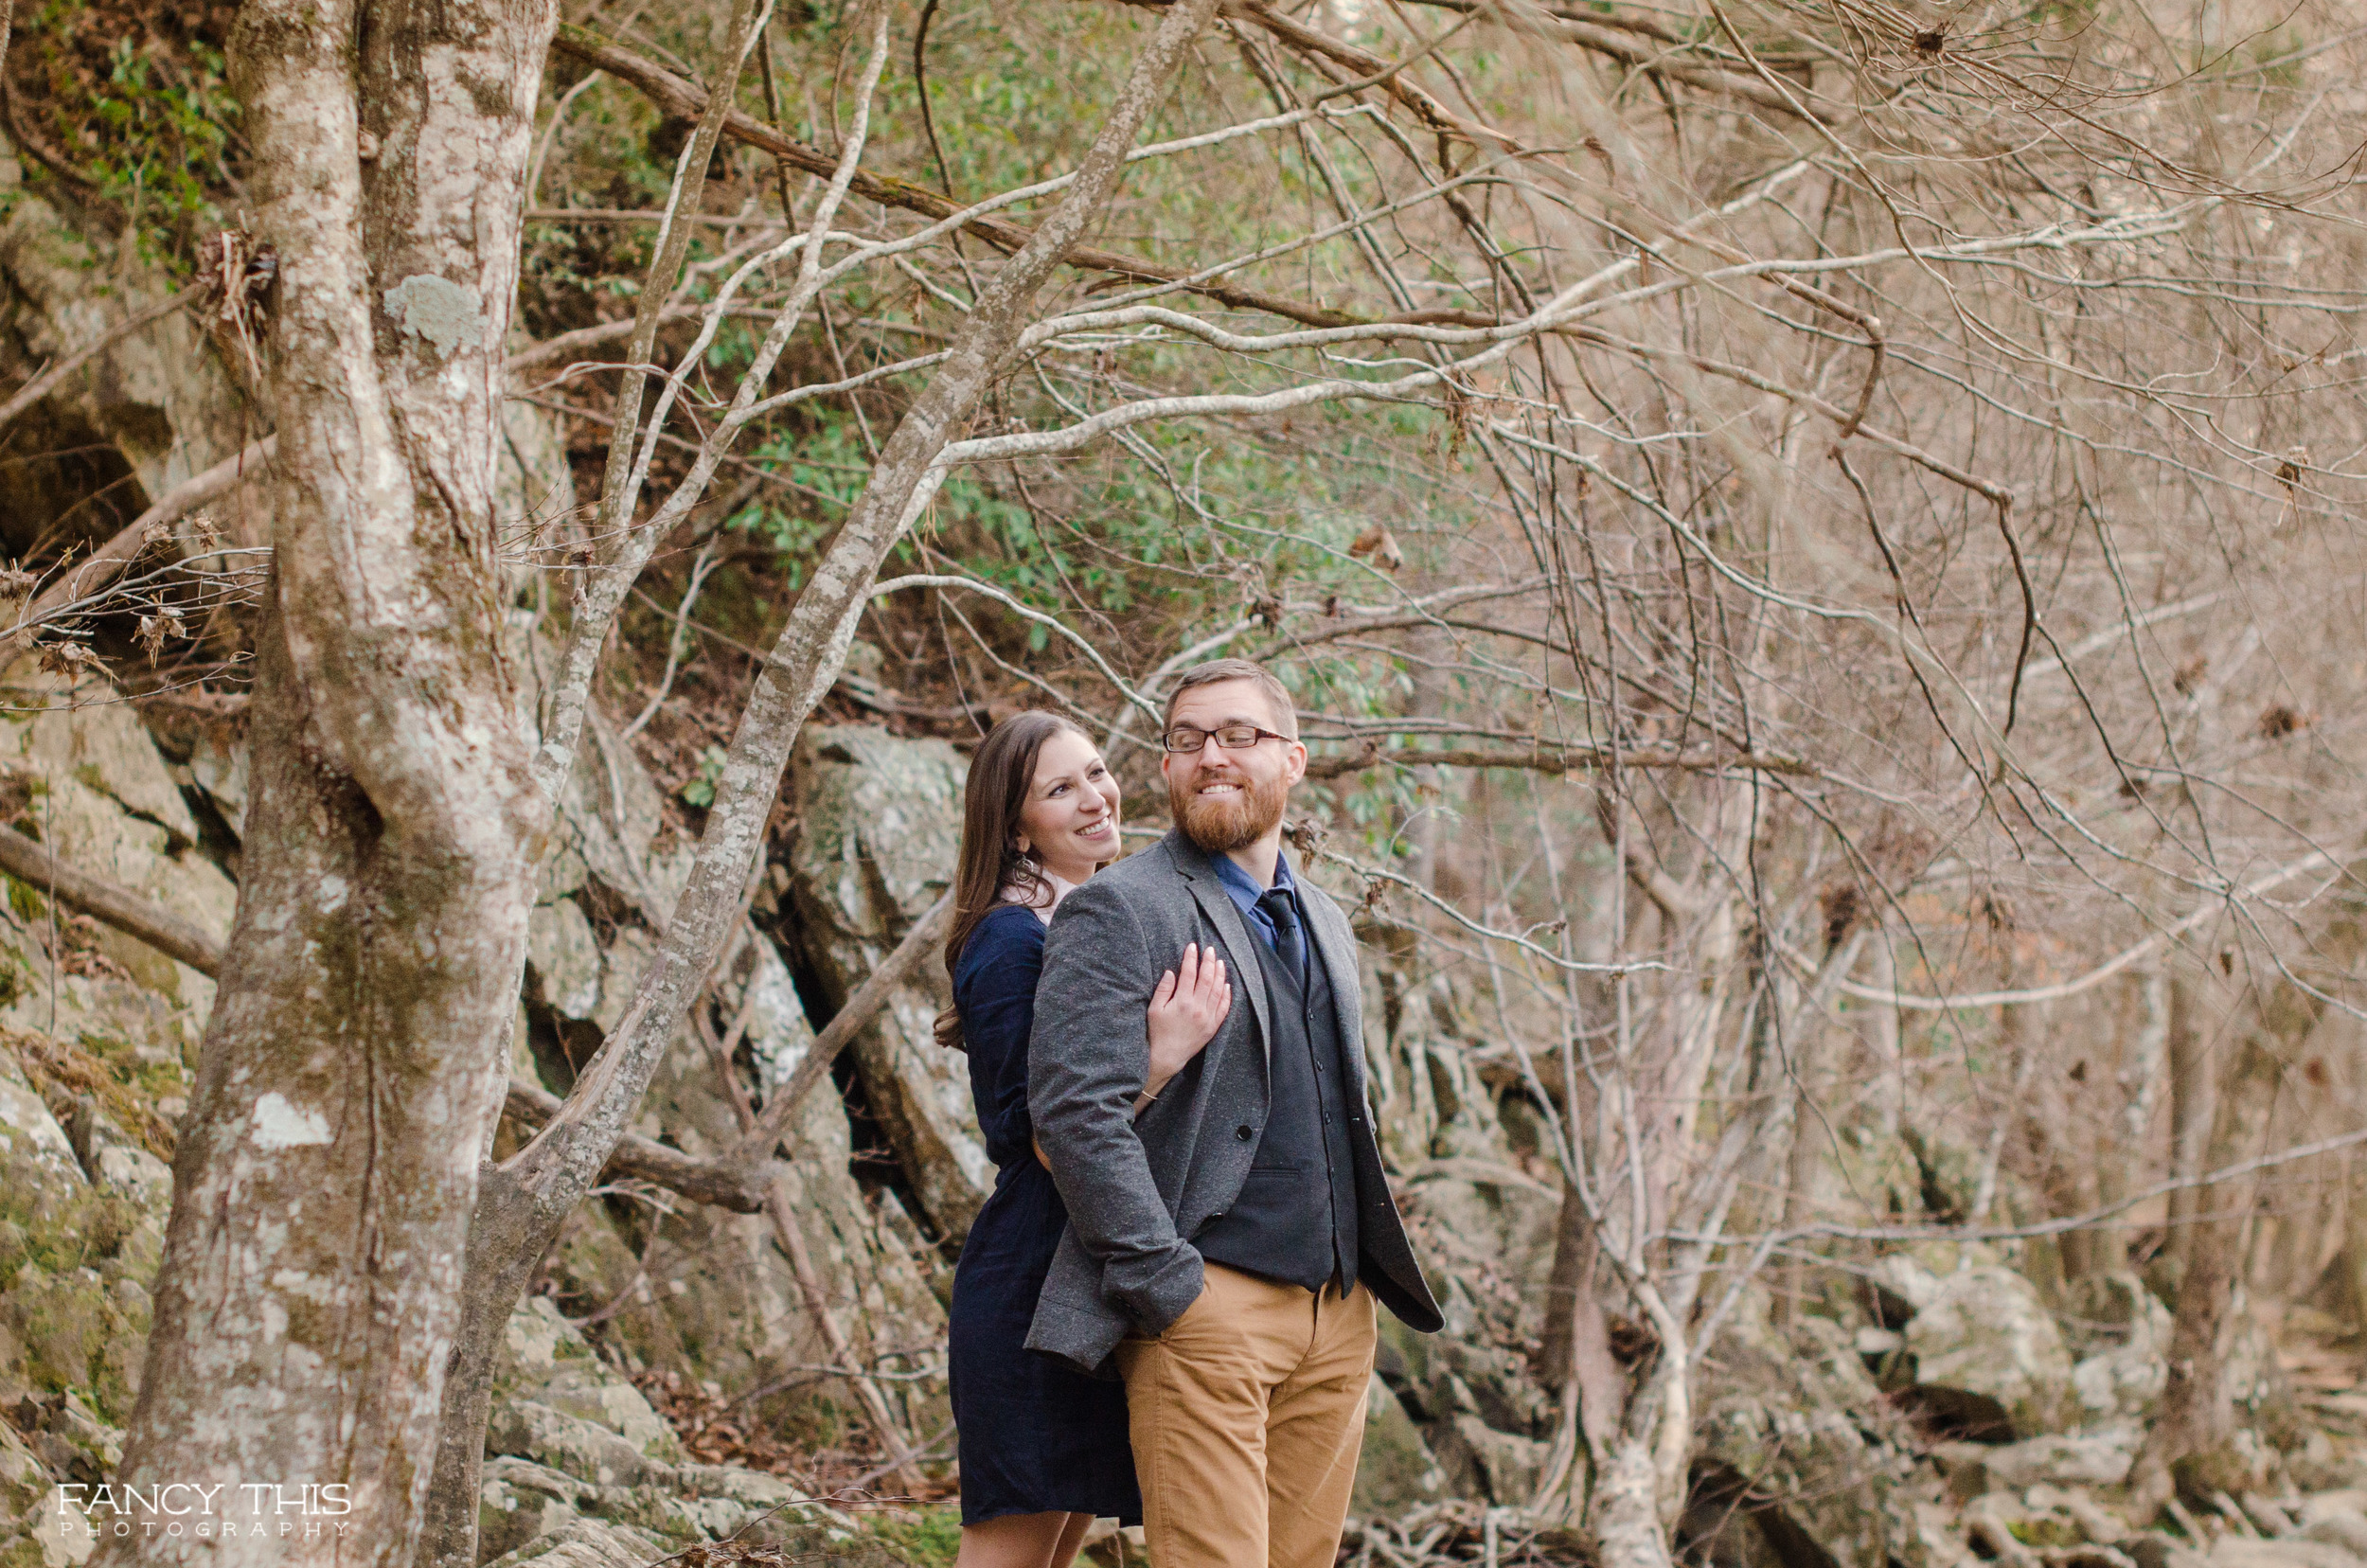 garrett_diana_engagement (124 of 130).jpg